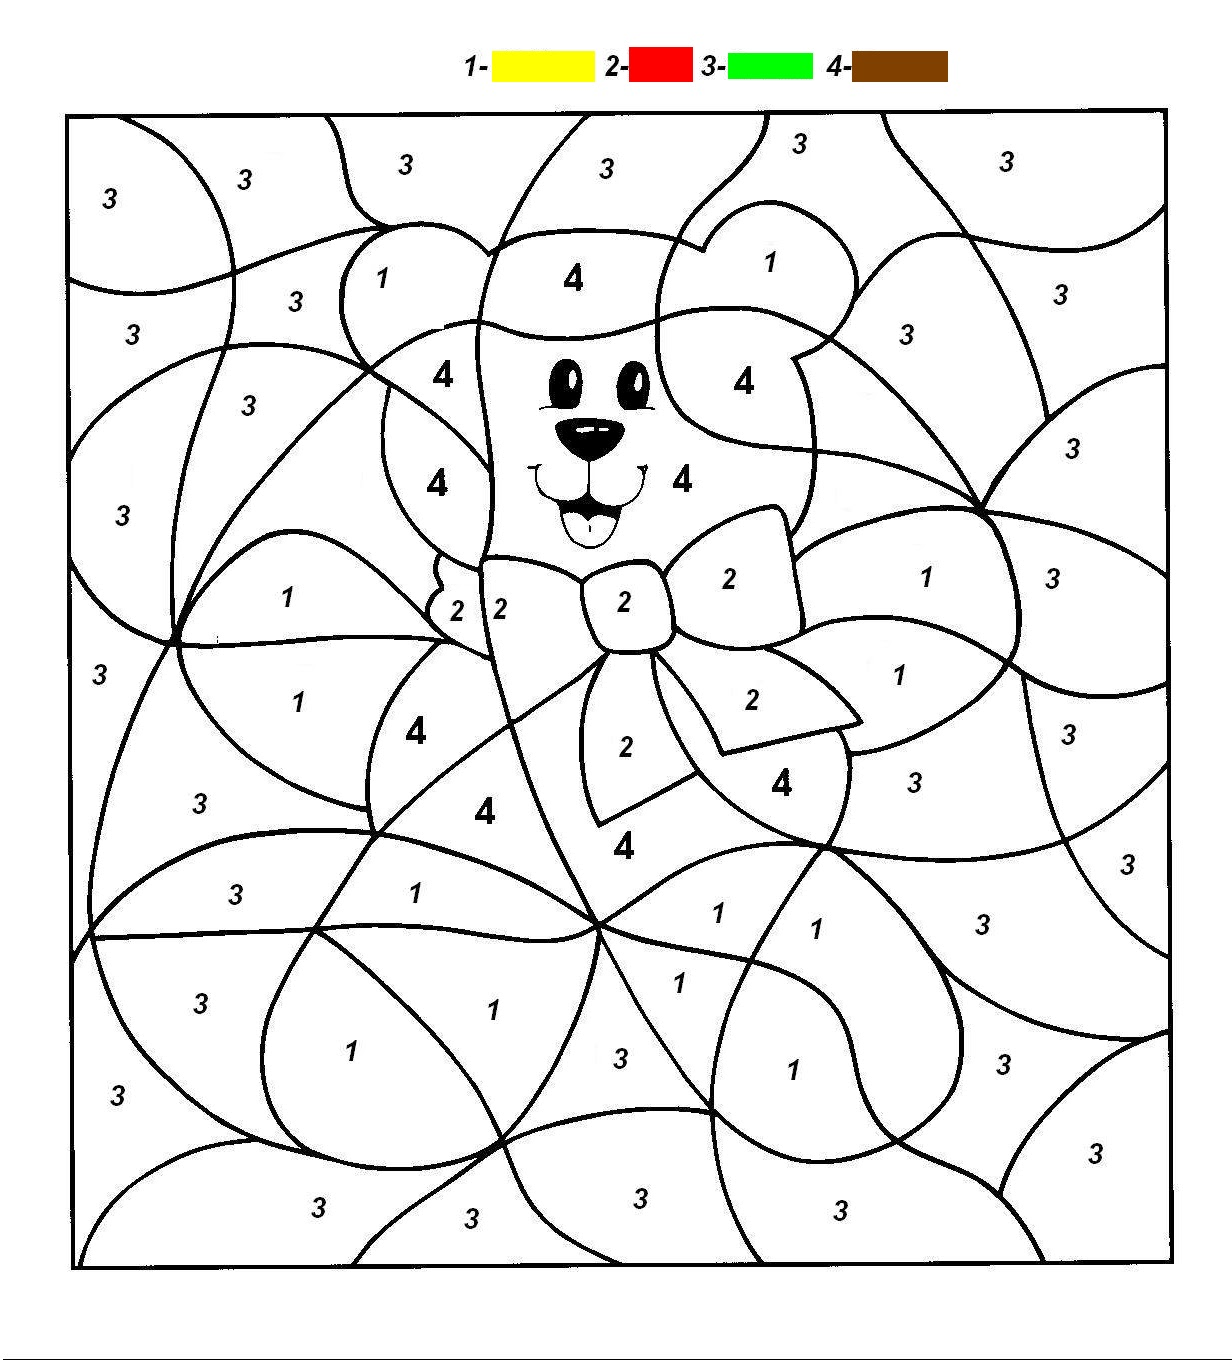 Printable coloring pages esl - Monday July 1 2013